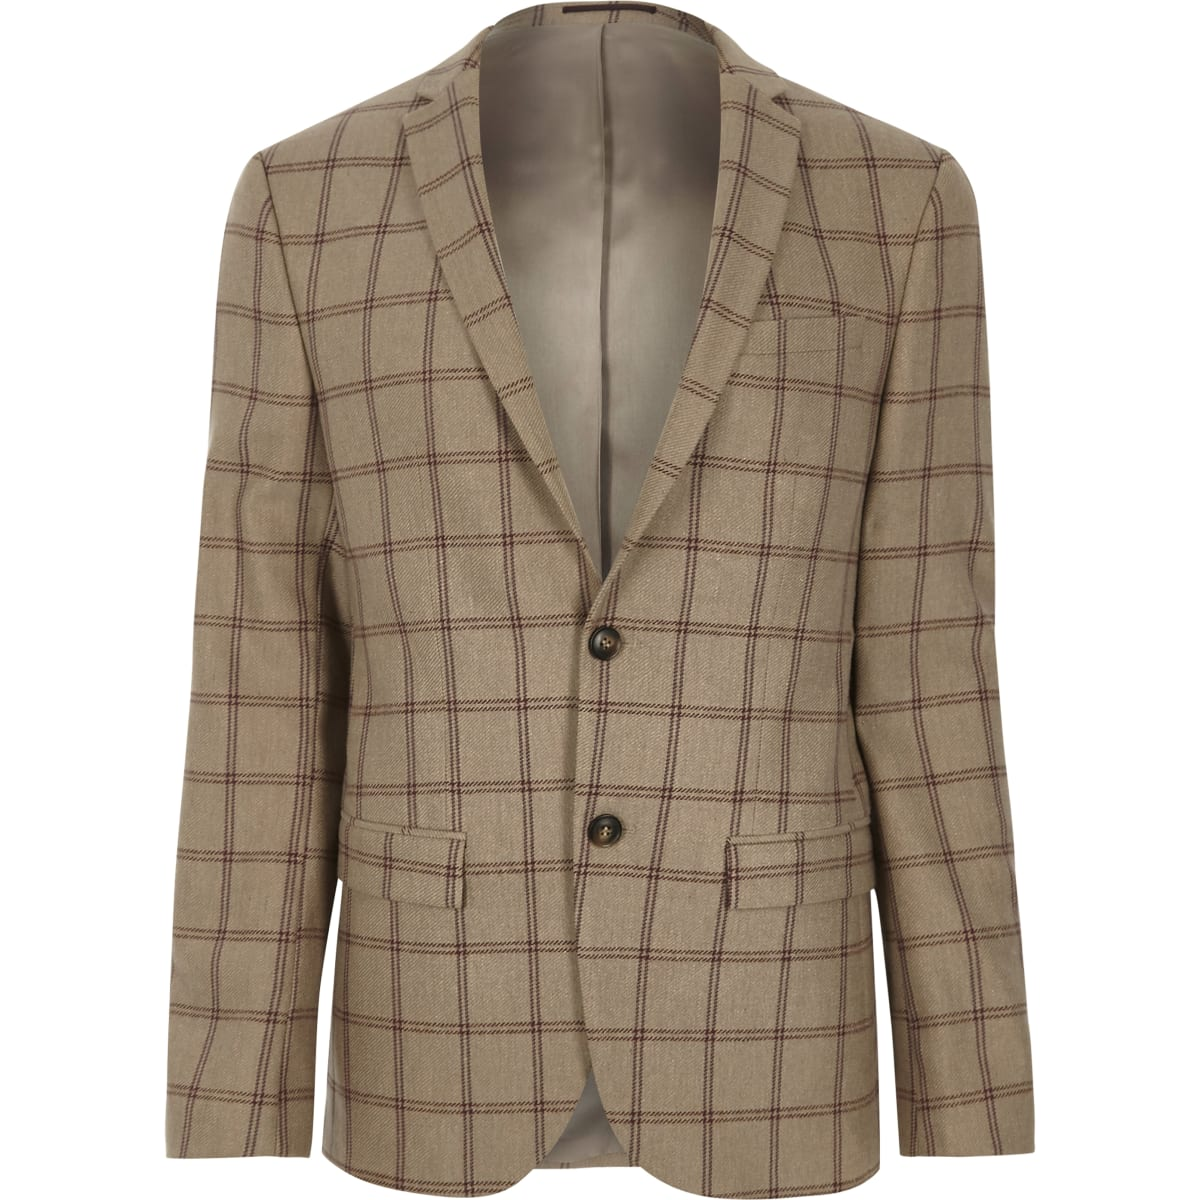 Beige check skinny fit suit jacket